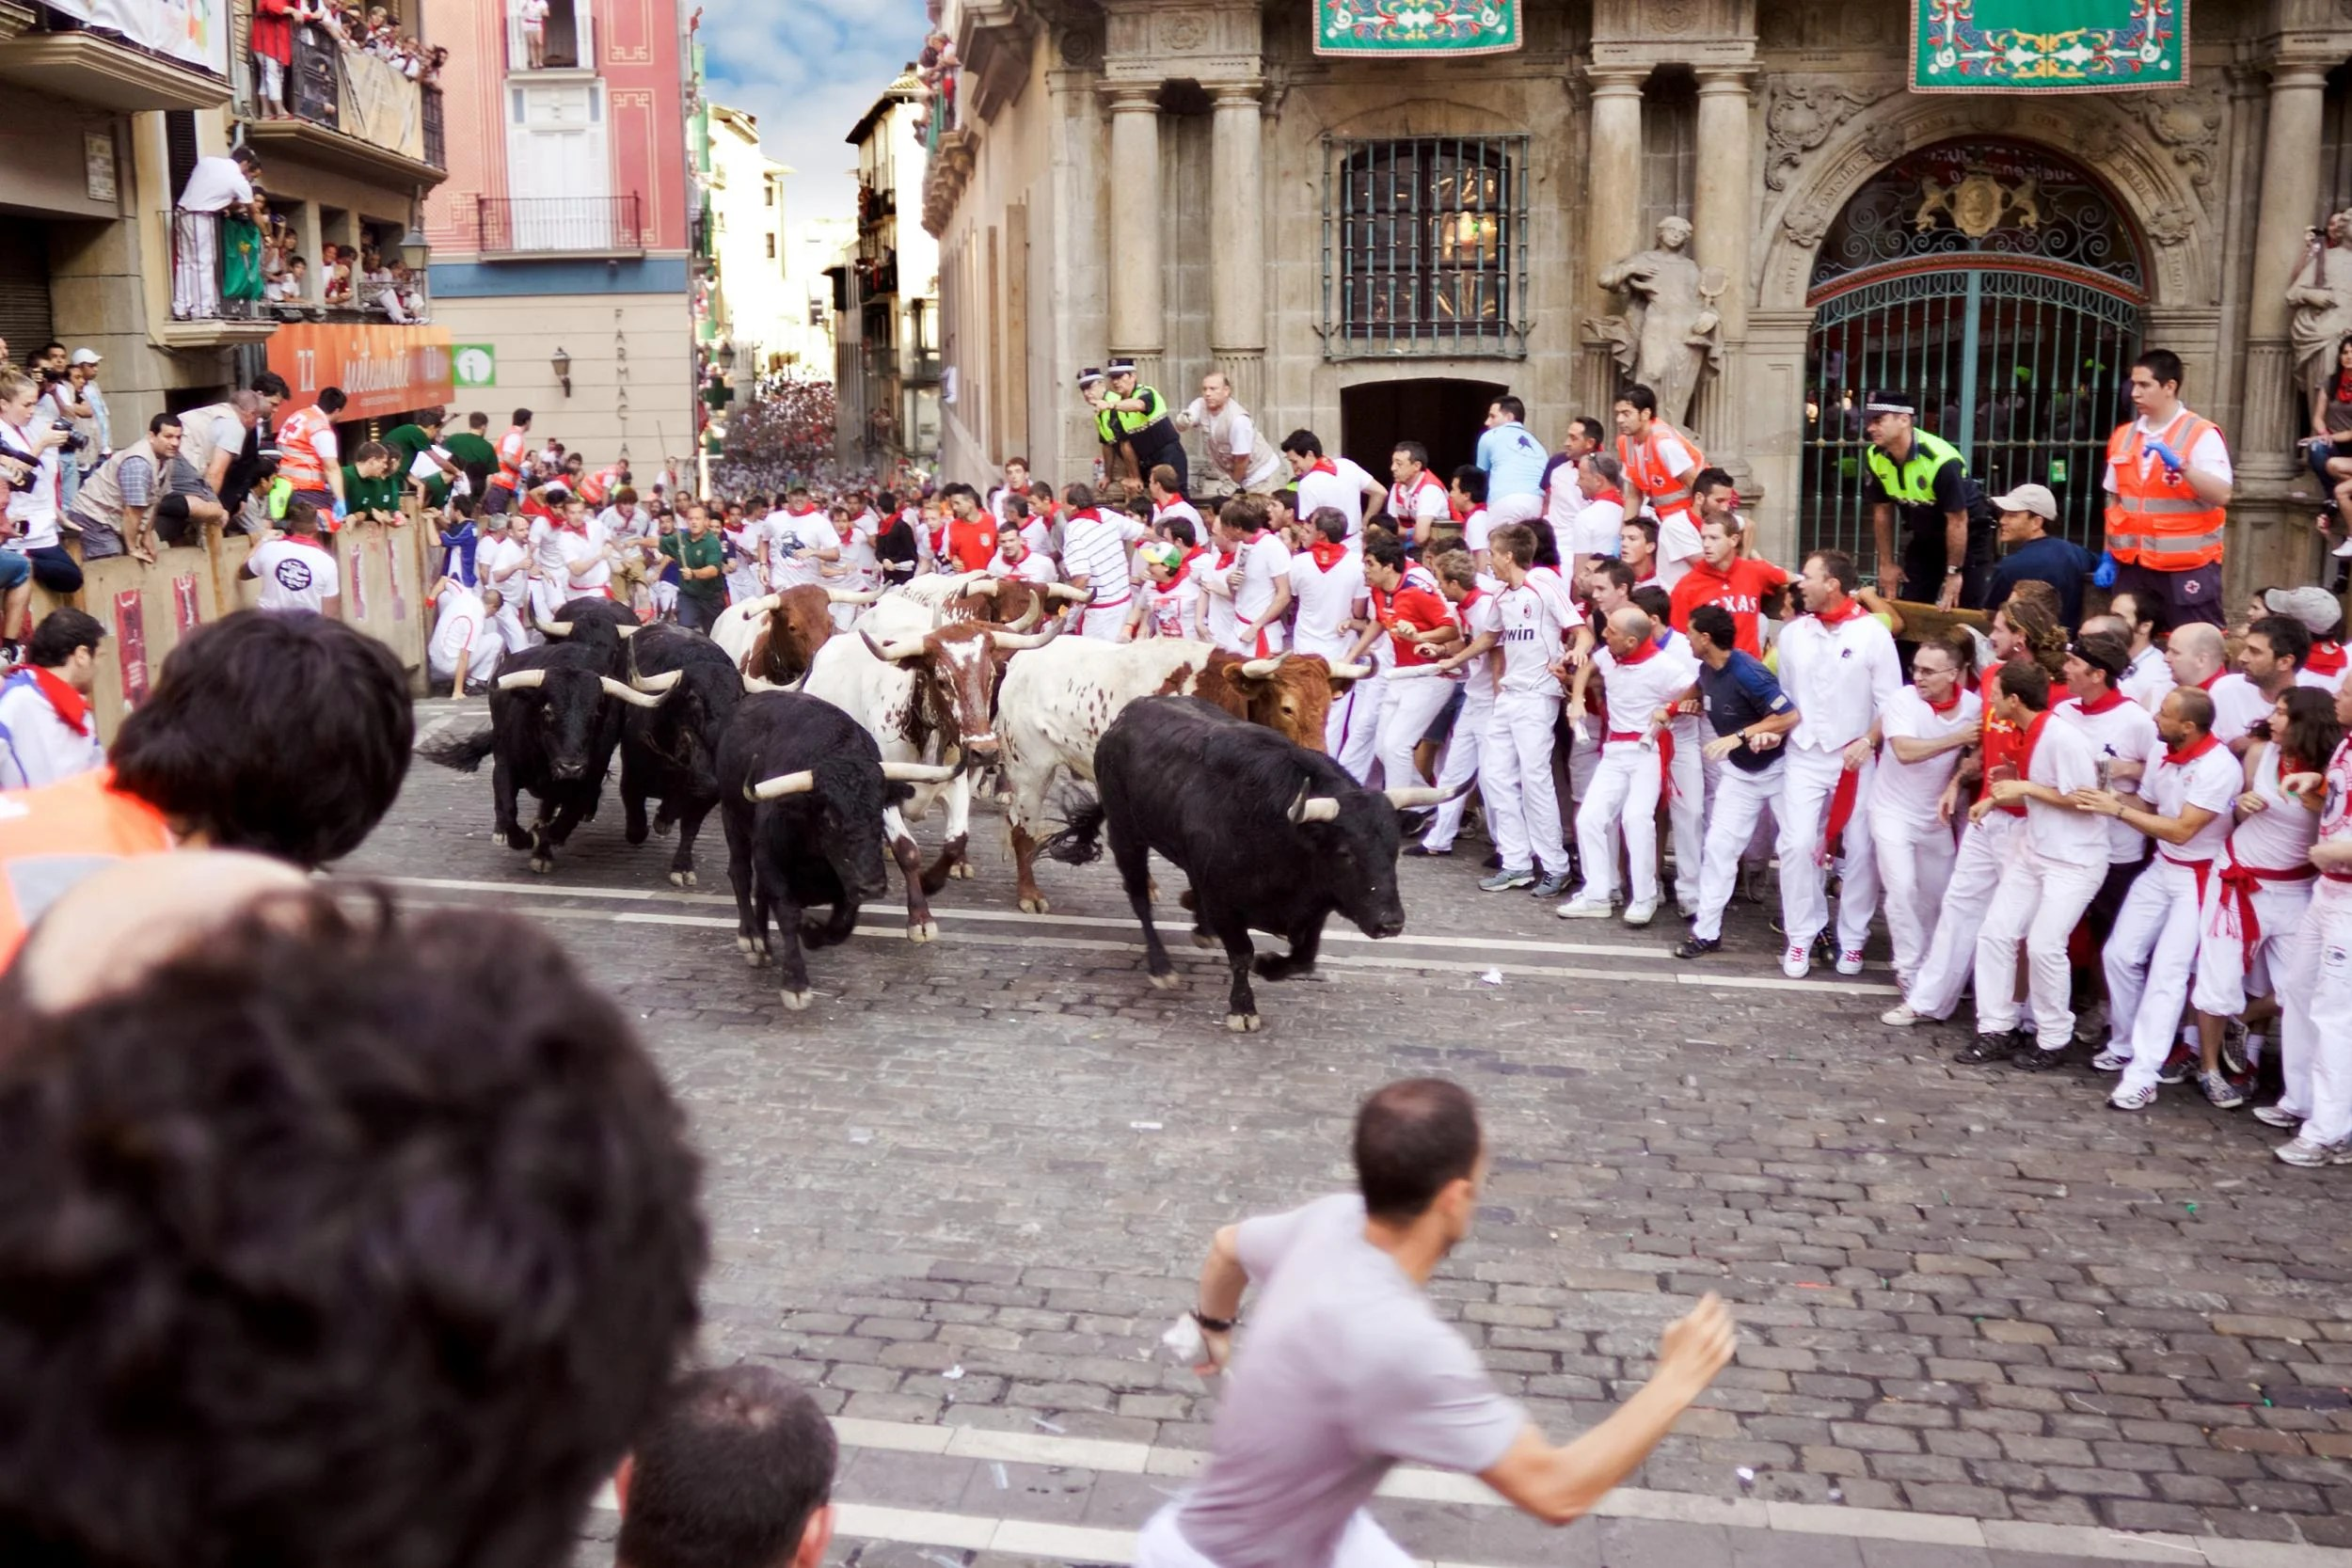 Tourists concerned about animal welfare should reconsider their involvement in the annual Pamplona bull run